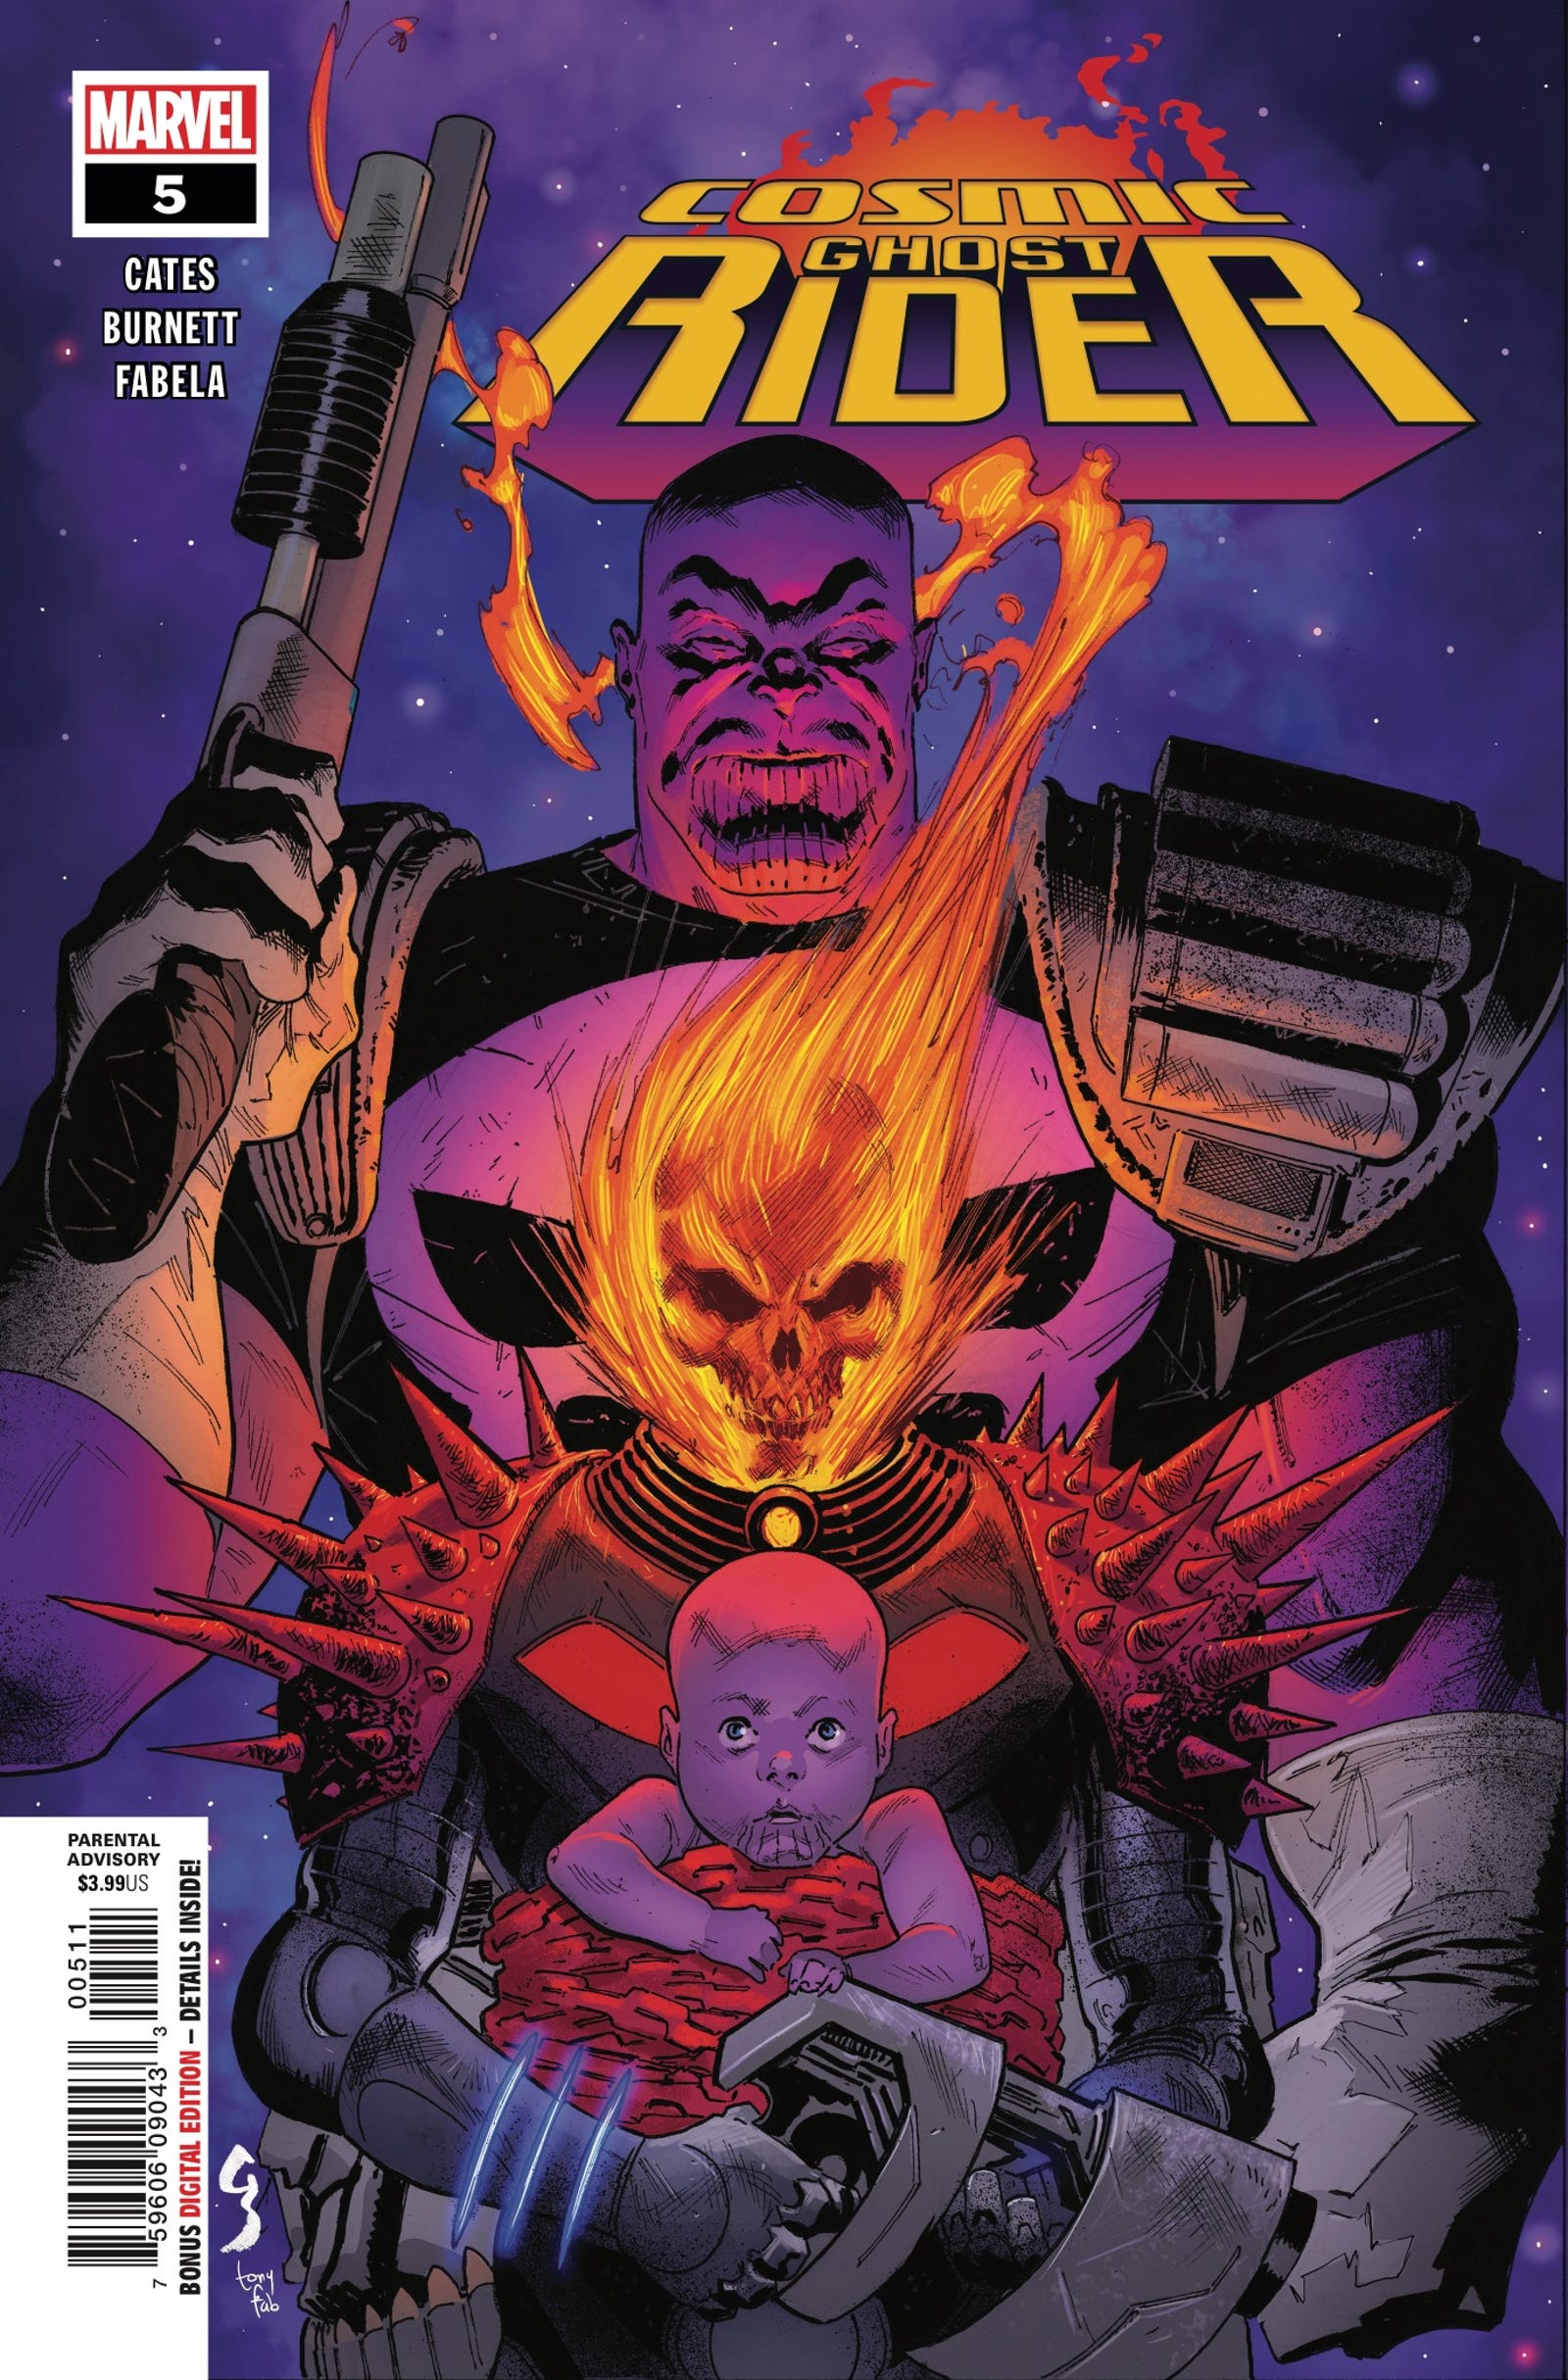 Cover by Geoff Shaw and Antonio Fabela